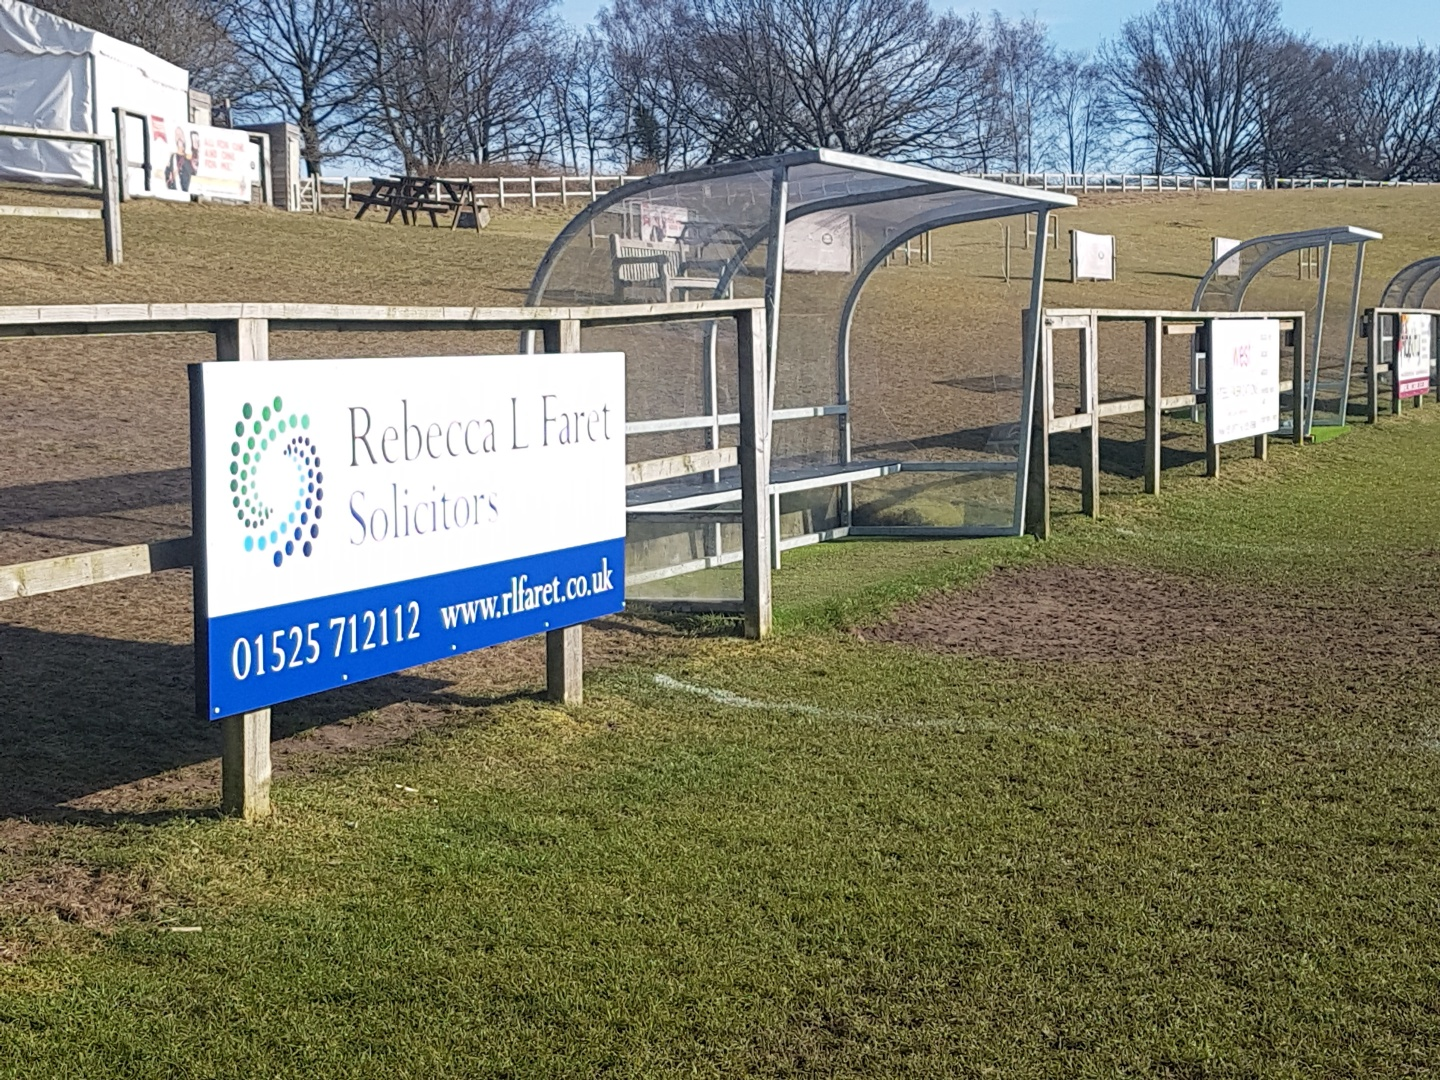 rebecca l faret solicitors - ampthill rugby club sponsorship 2